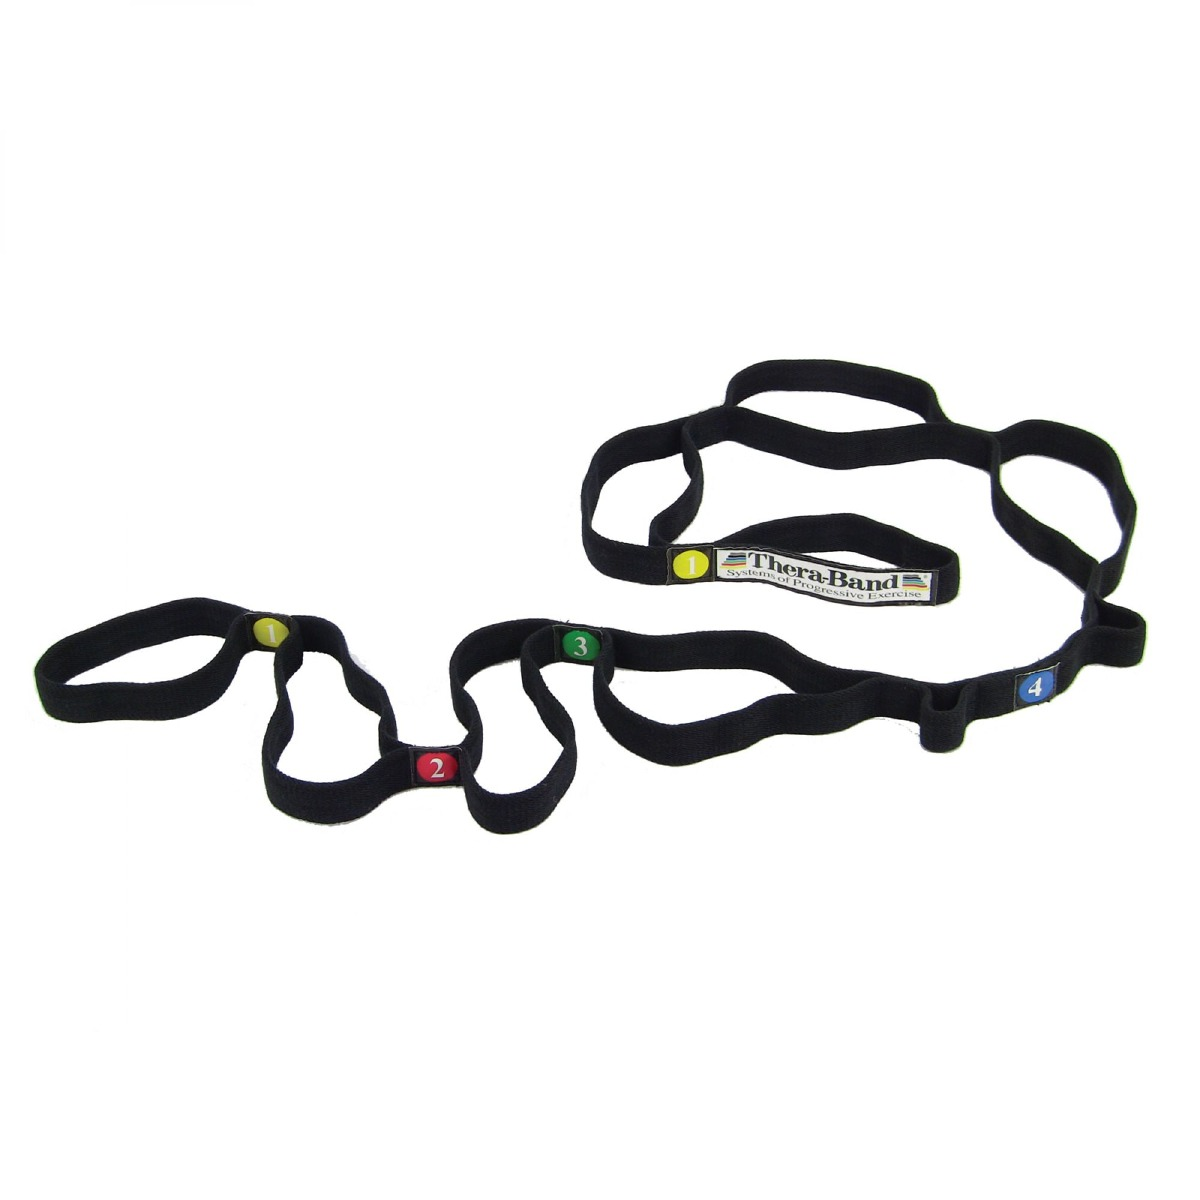 Black TheraBands stretch strap with loops